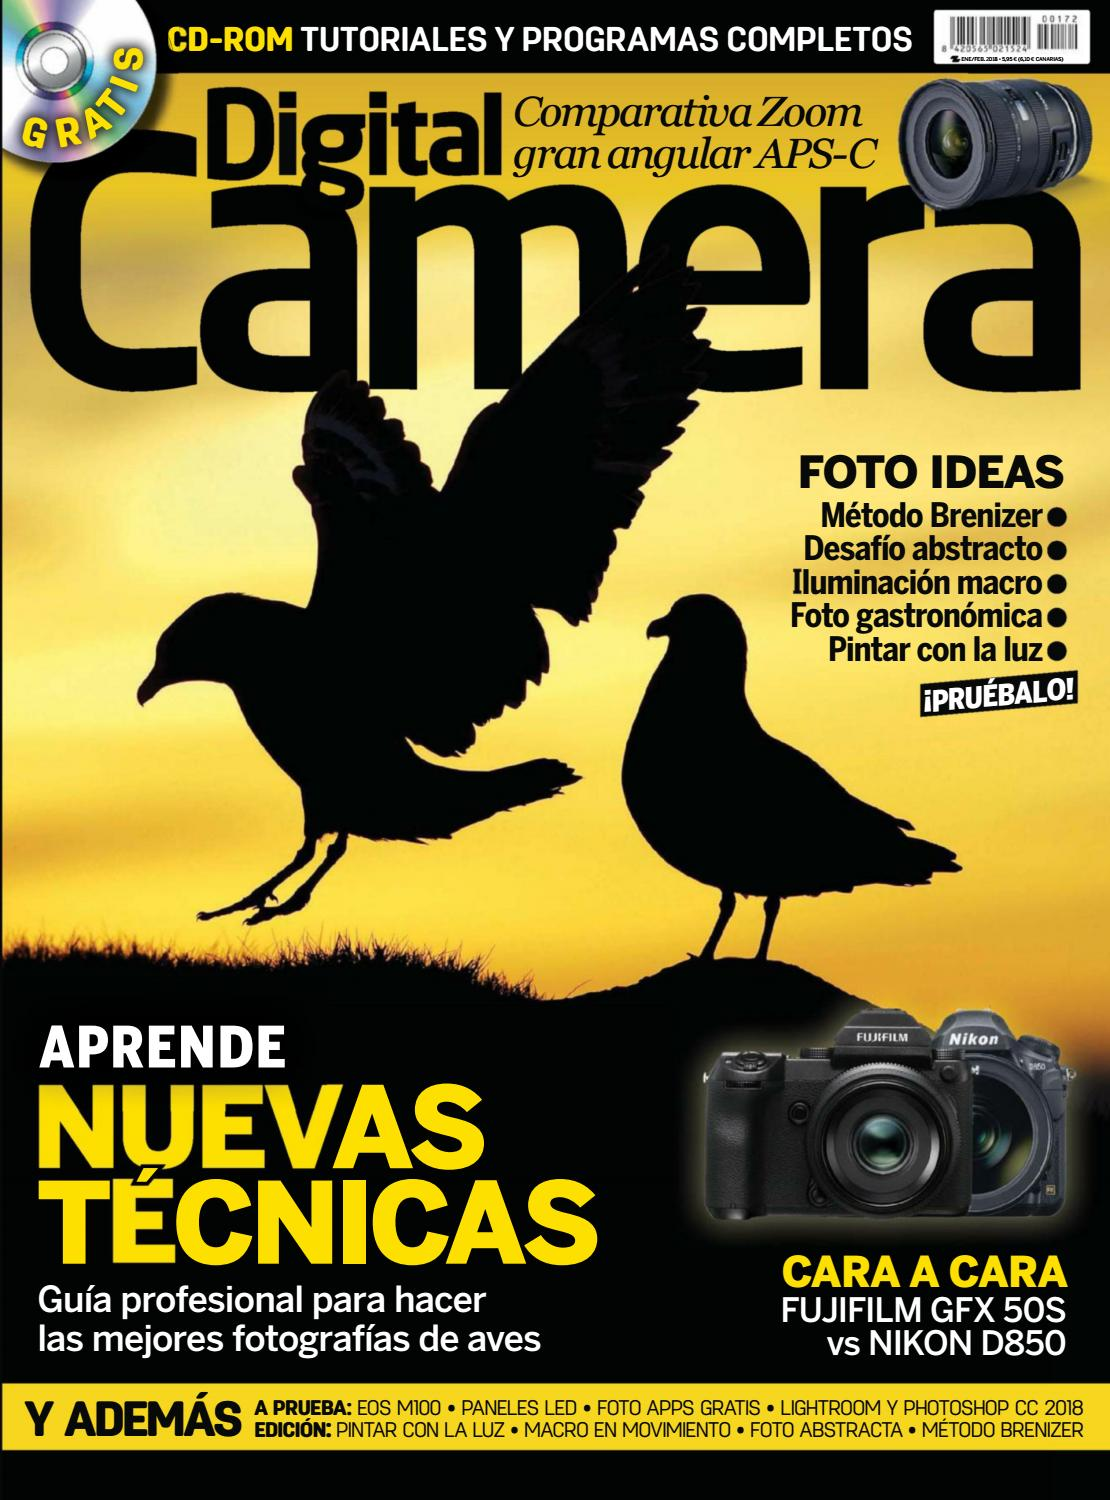 Digital camera enero 2018 by bena20 - issuu